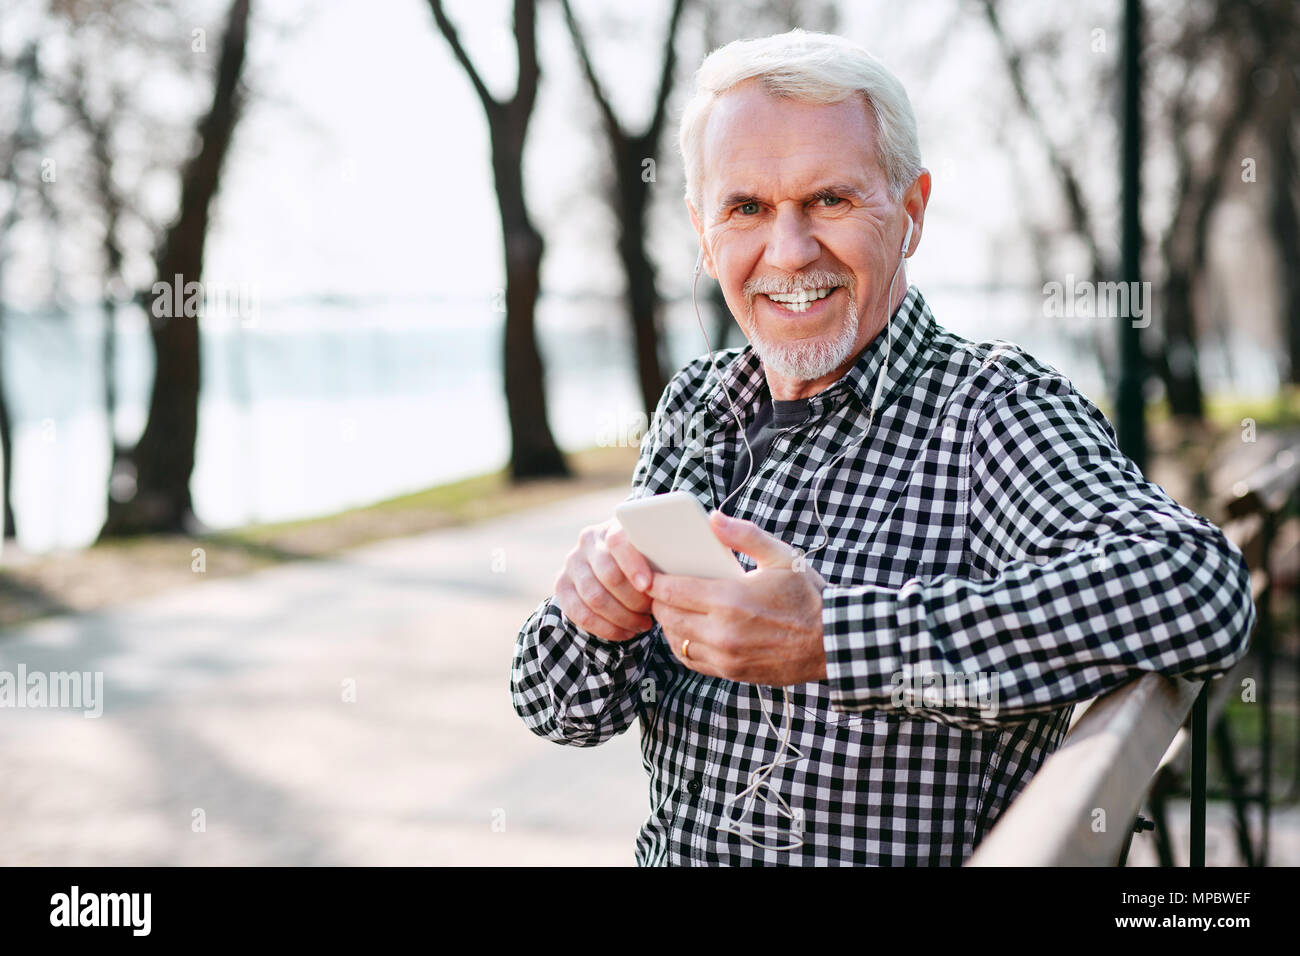 Happy senior man selecting playlist - Stock Image